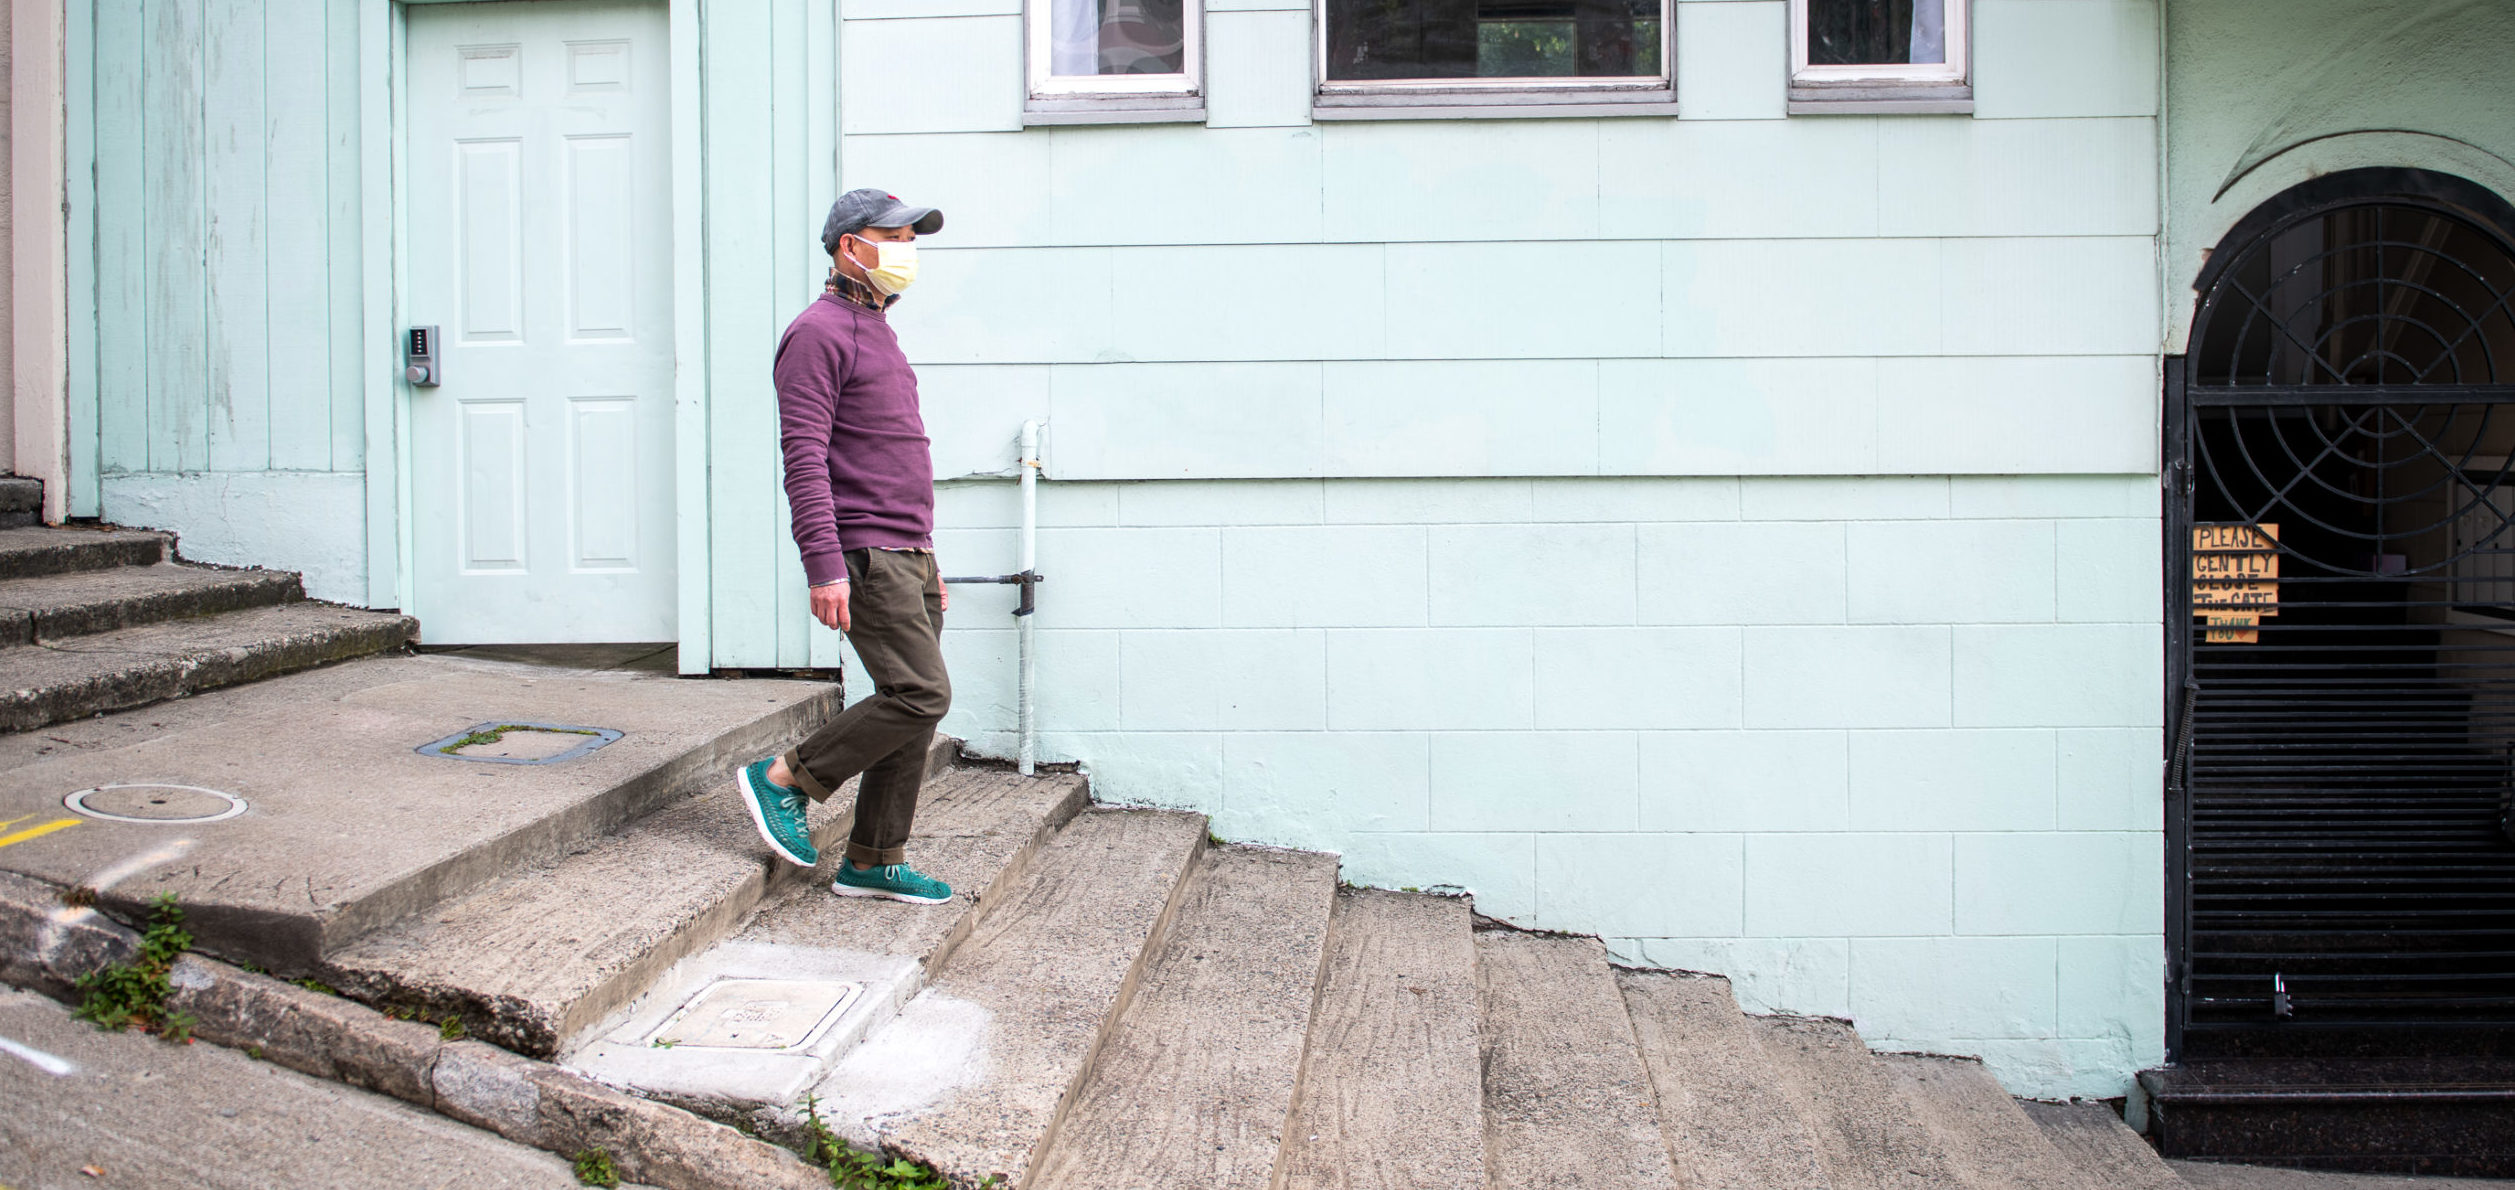 Henry Zhang, a middle-aged immigrant from Taishan, China walks down a set of stone steps in San Francisco's Chinatown neighborhood.